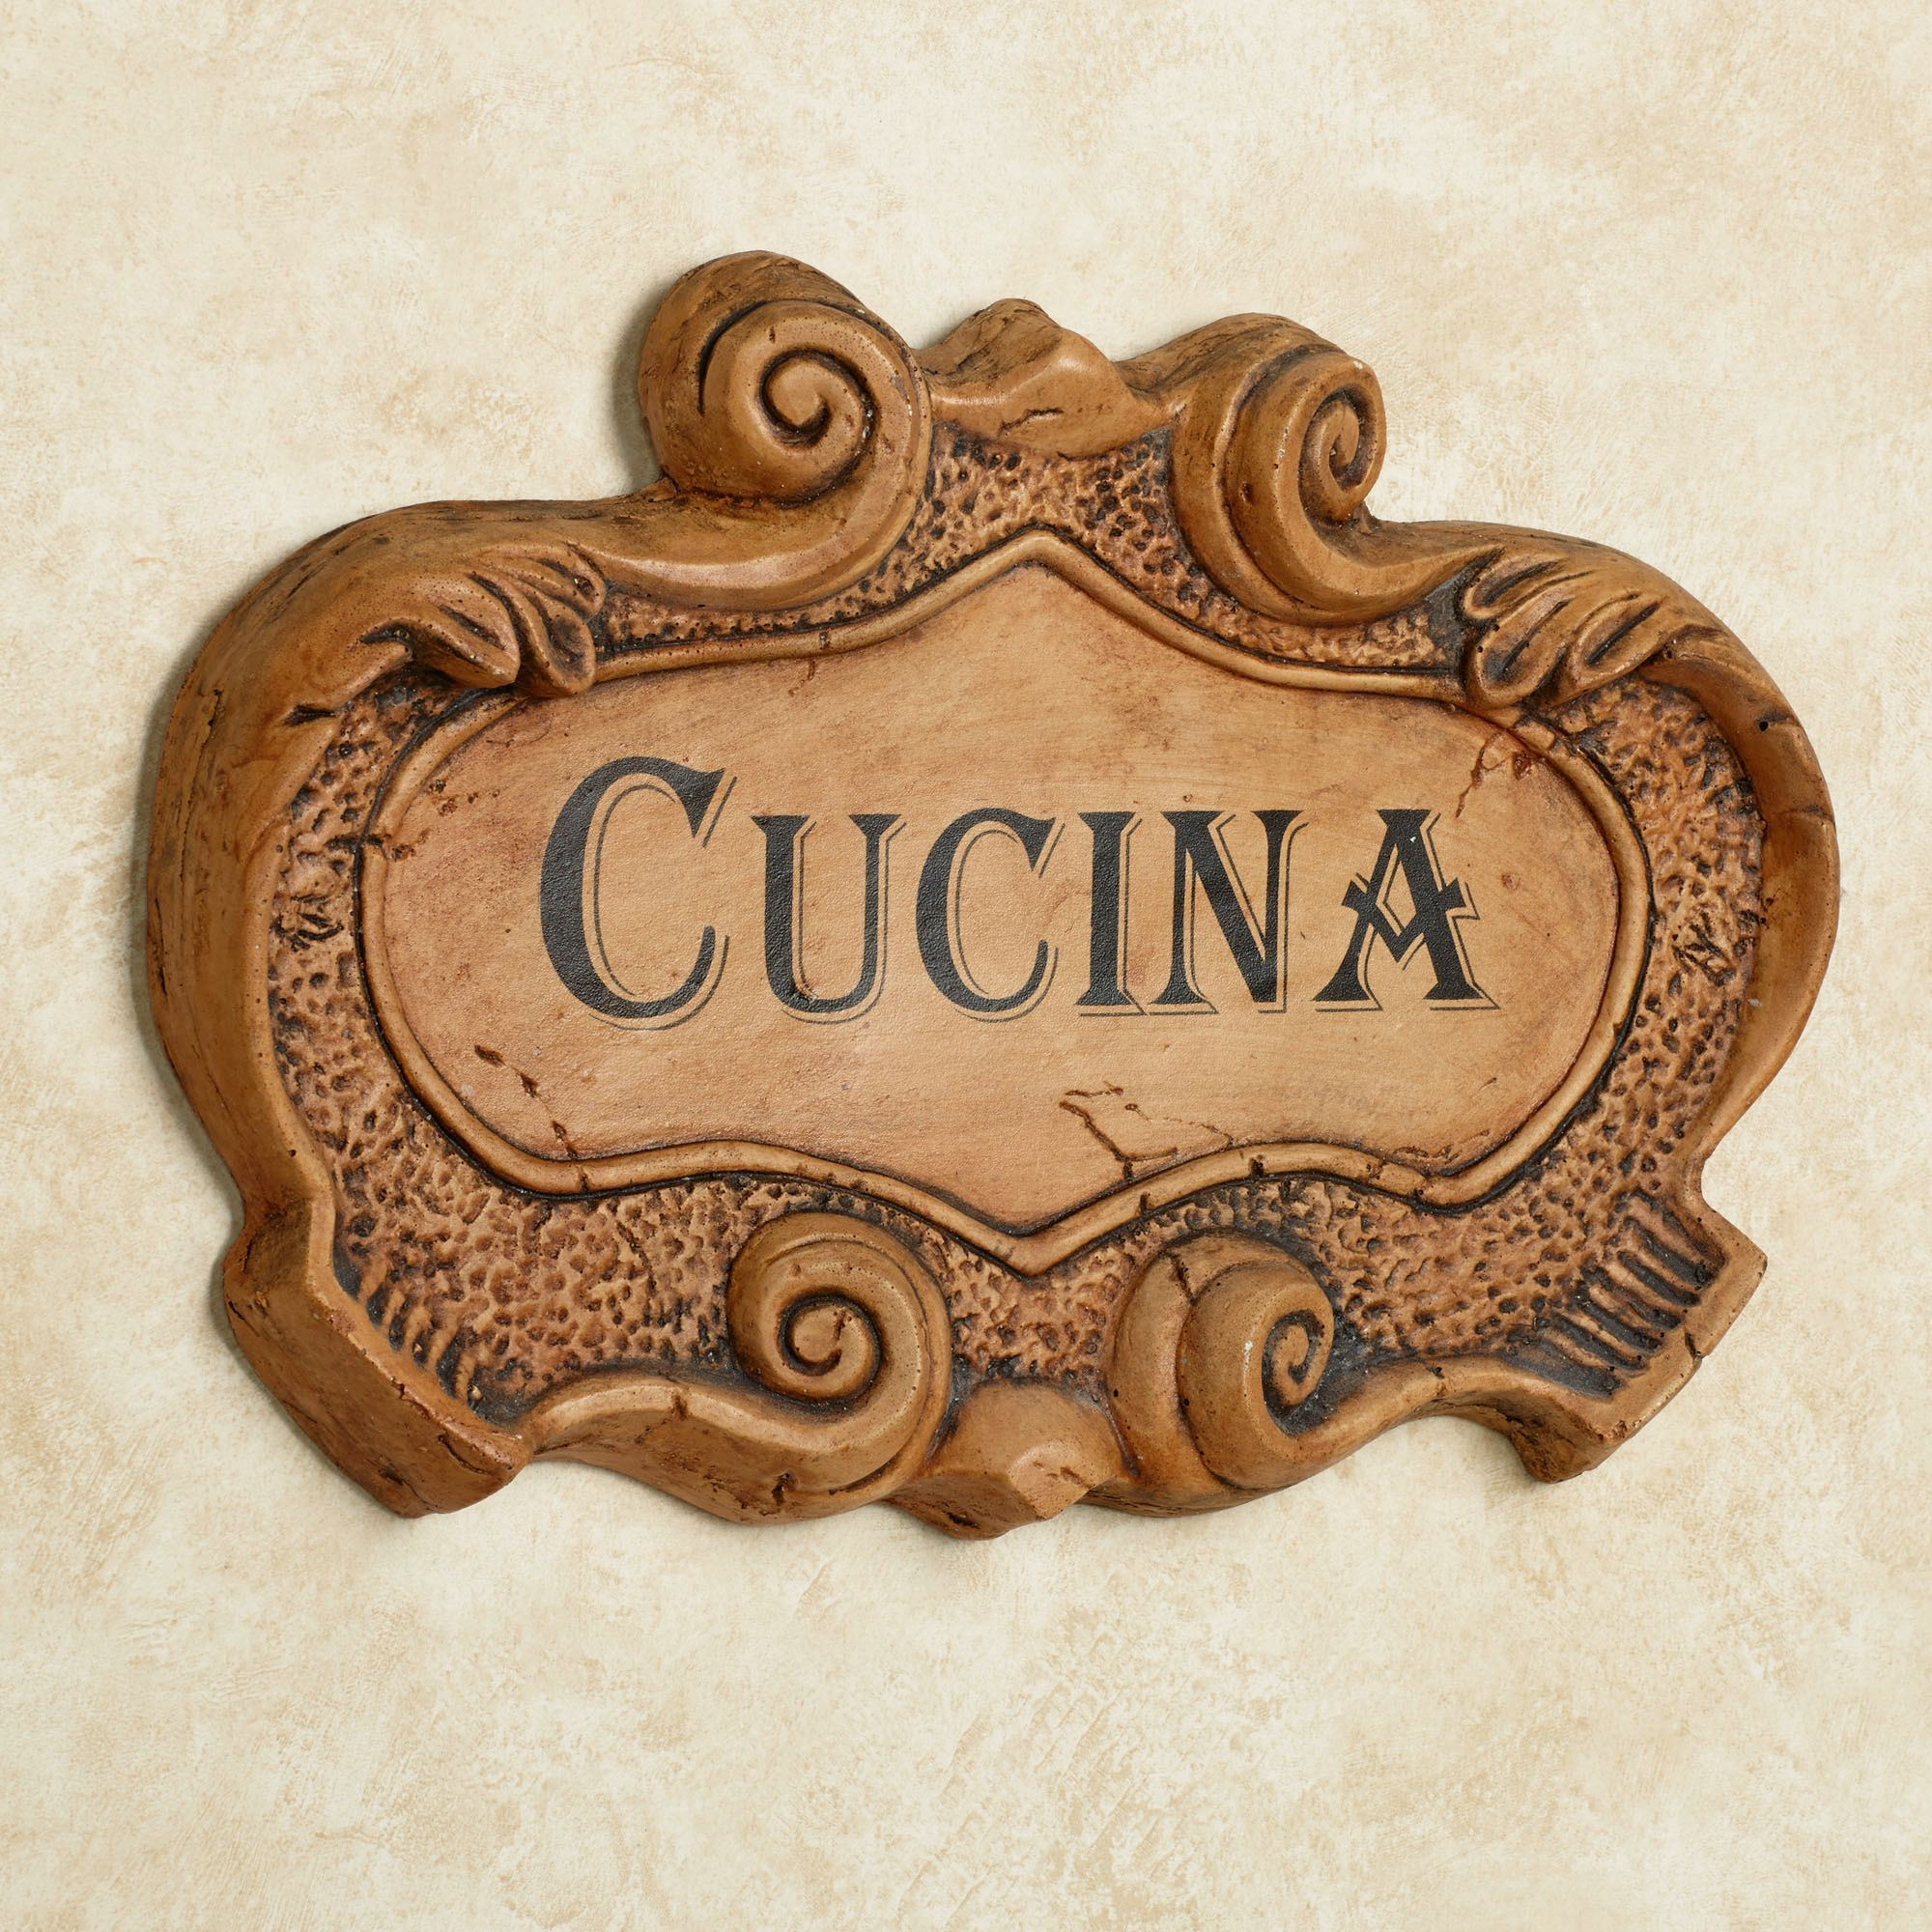 Wall Plaques Custom Cucina Italian Kitchen Wall Plaque Inspiration